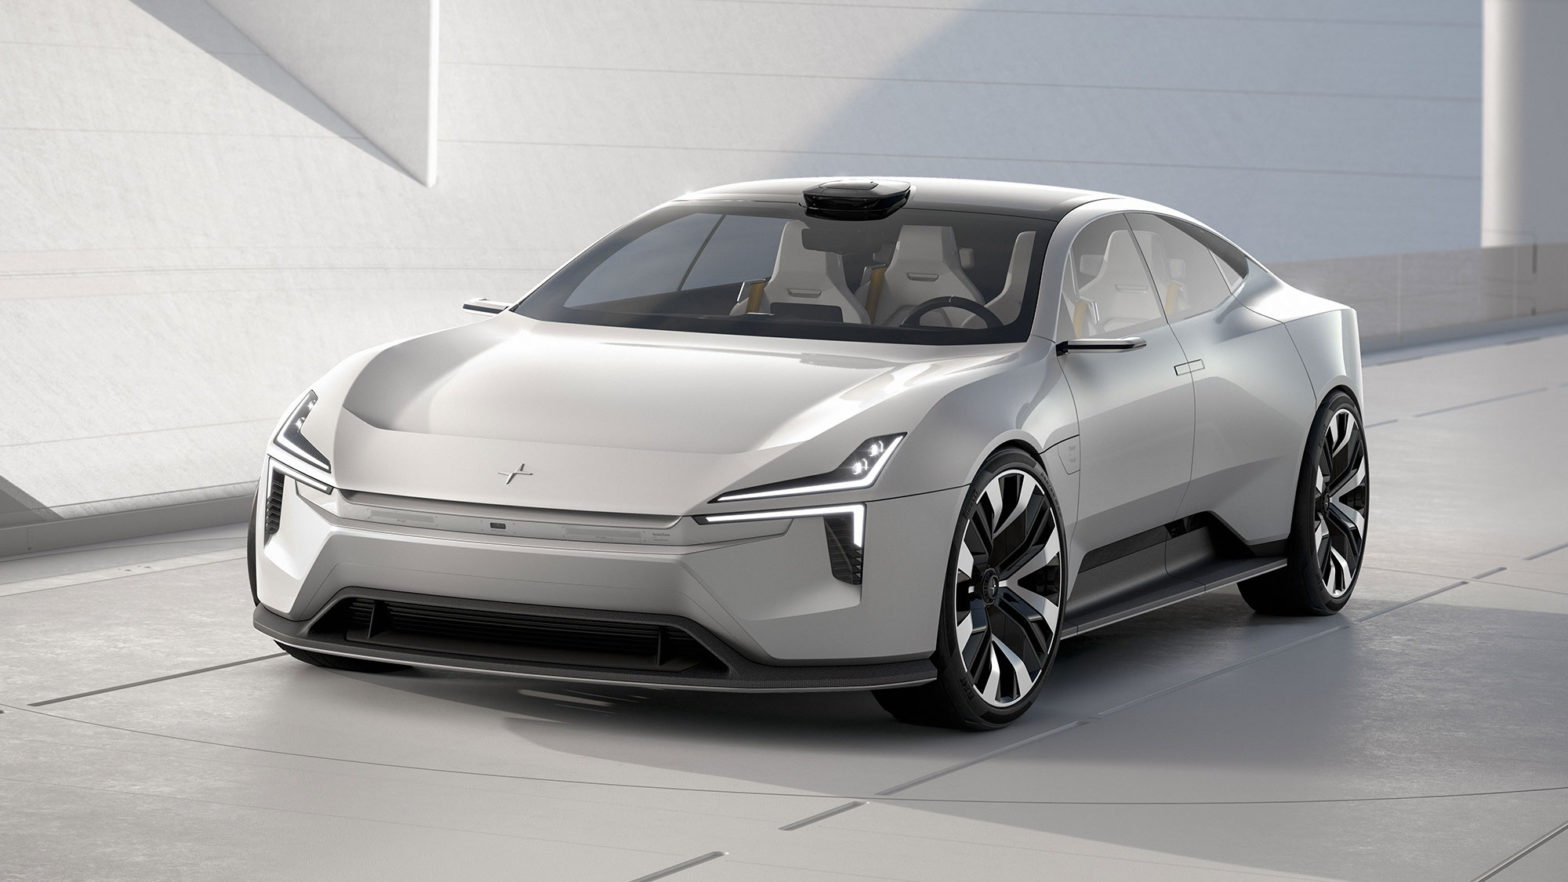 Polestar Precept Concept Electric Vehicle